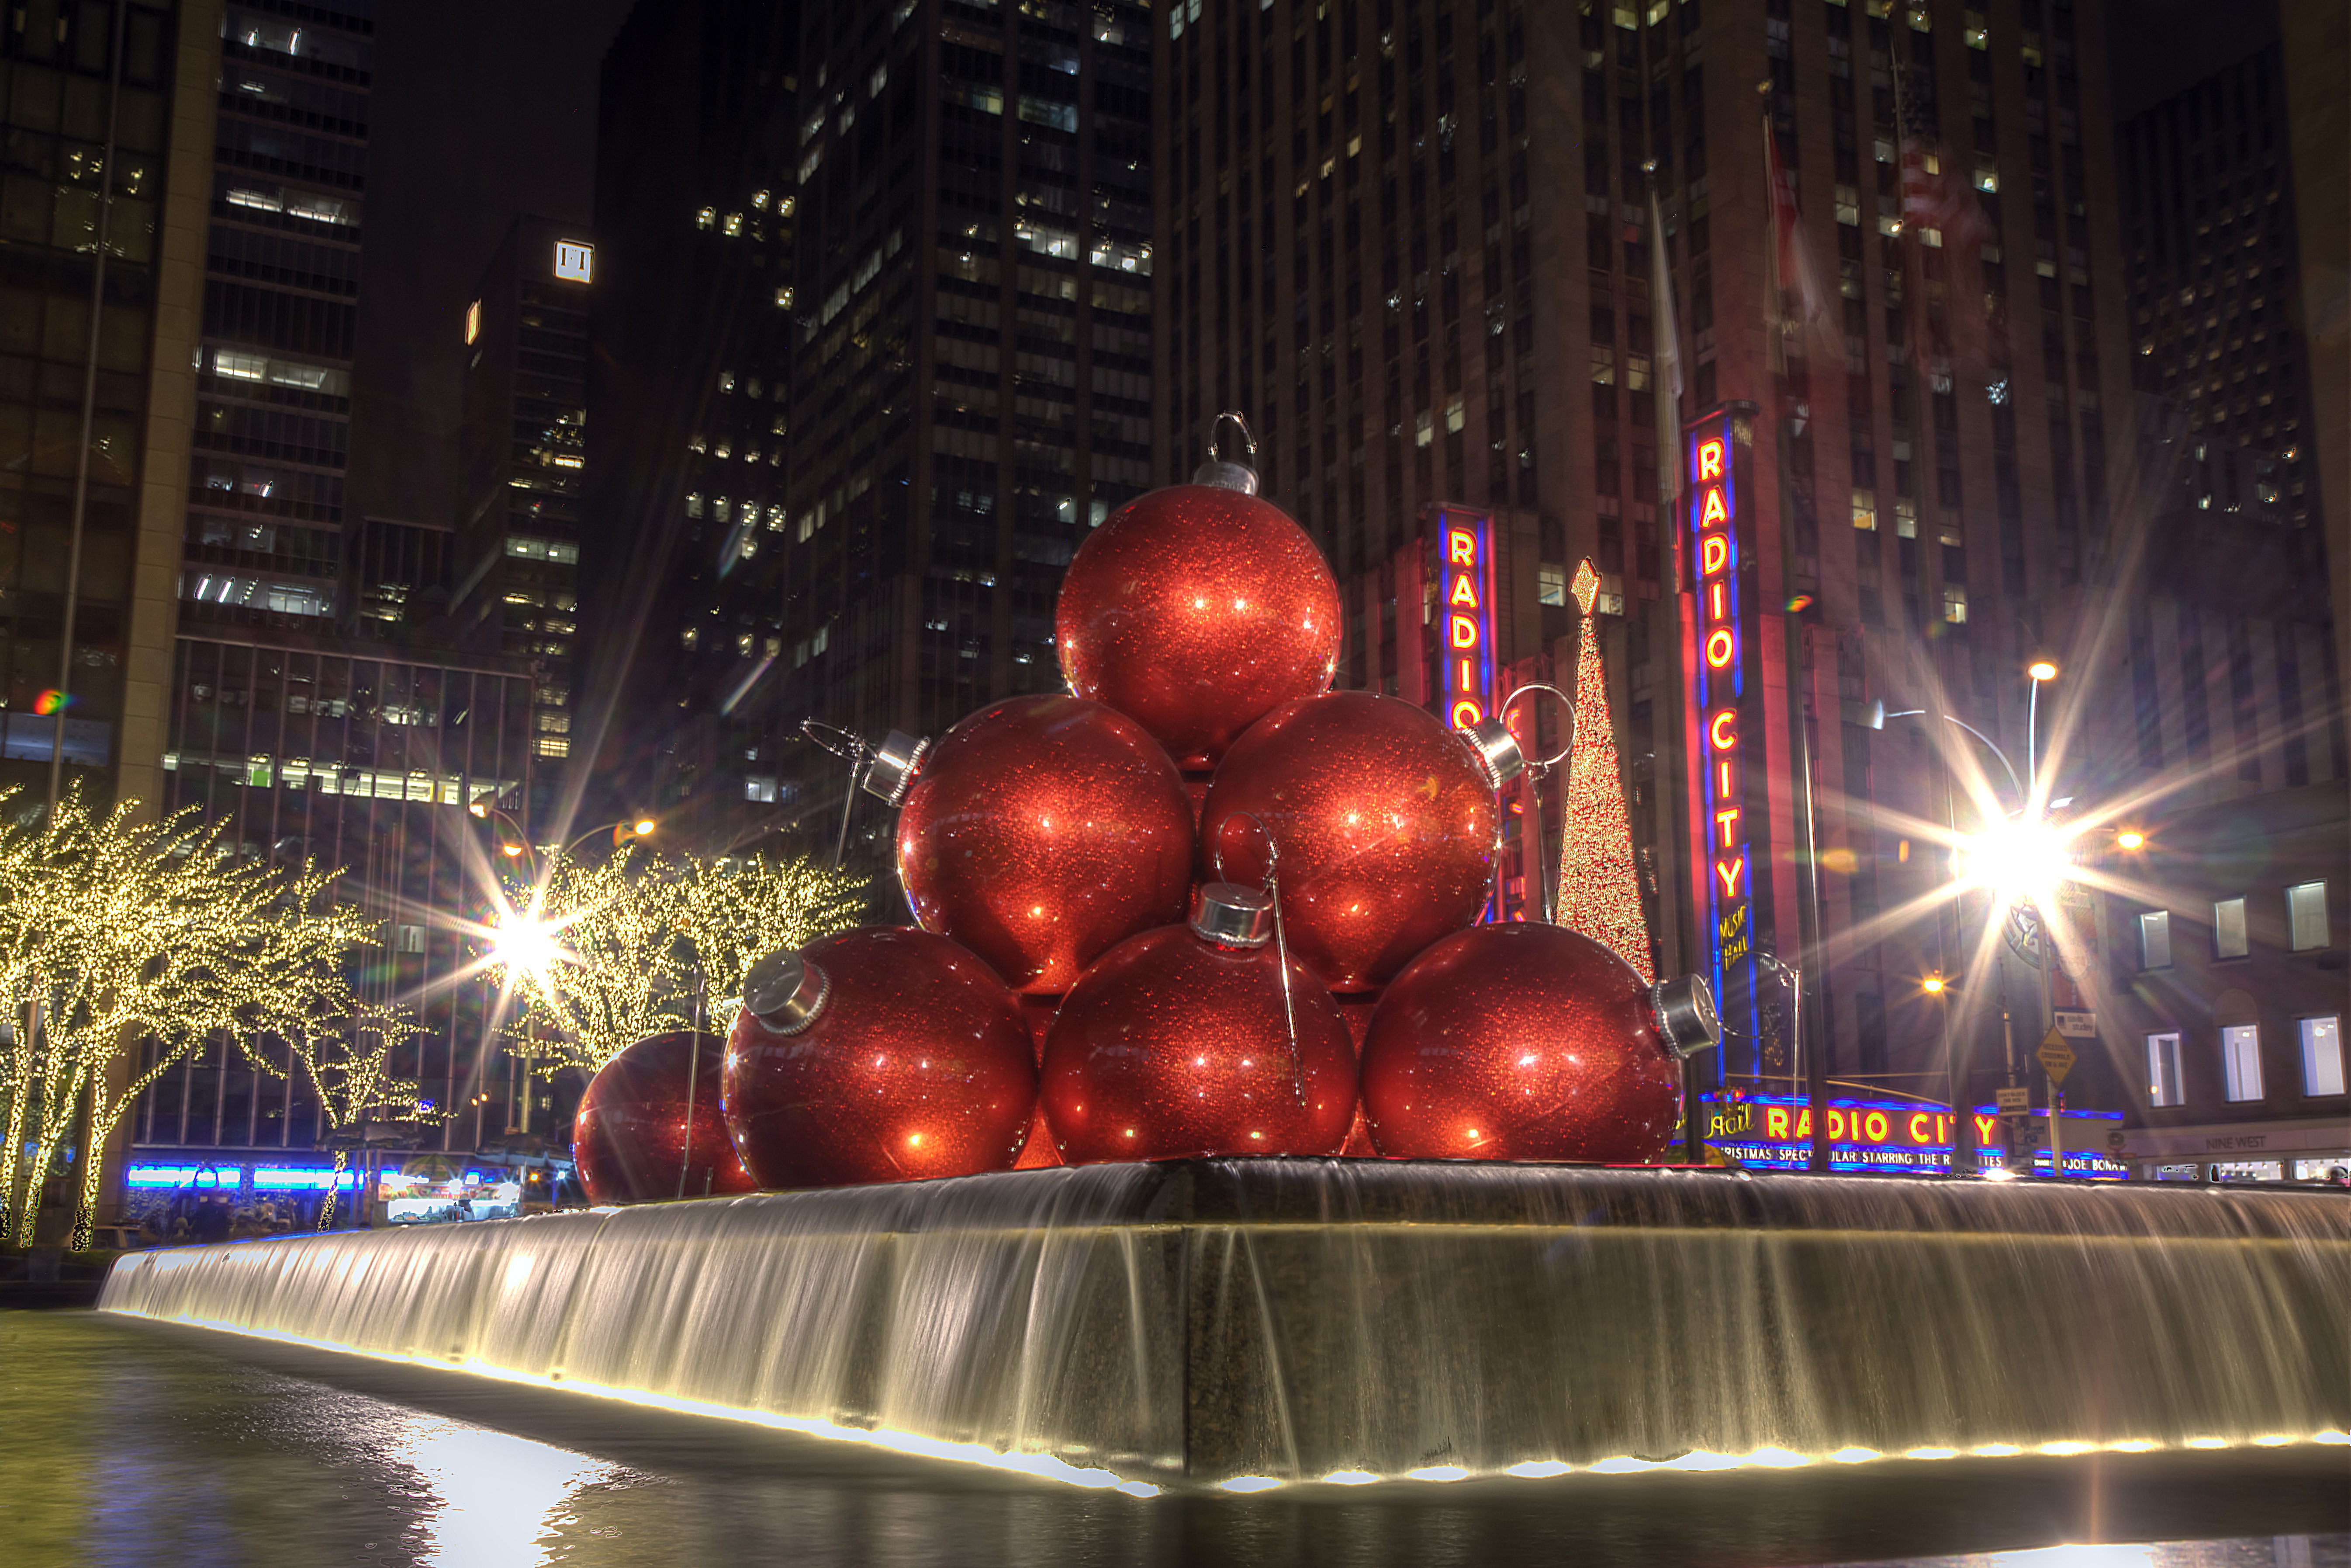 Huge Red Ornaments, NYC